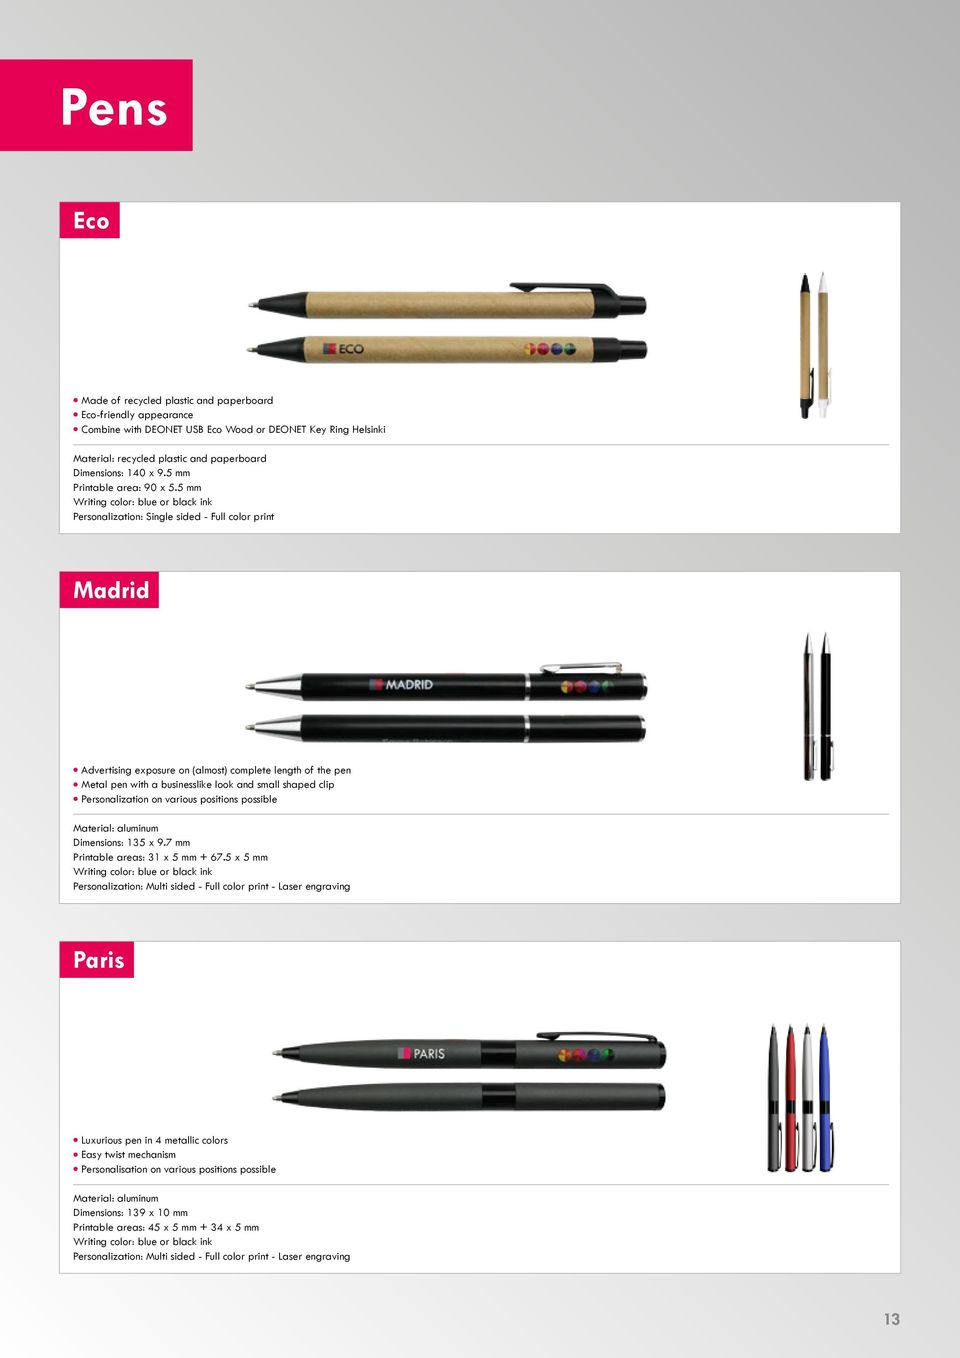 5 mm Writing color: blue or black ink Personalization: Single sided - Full color print Madrid Advertising exposure on (almost) complete length of the pen Metal pen with a businesslike look and small